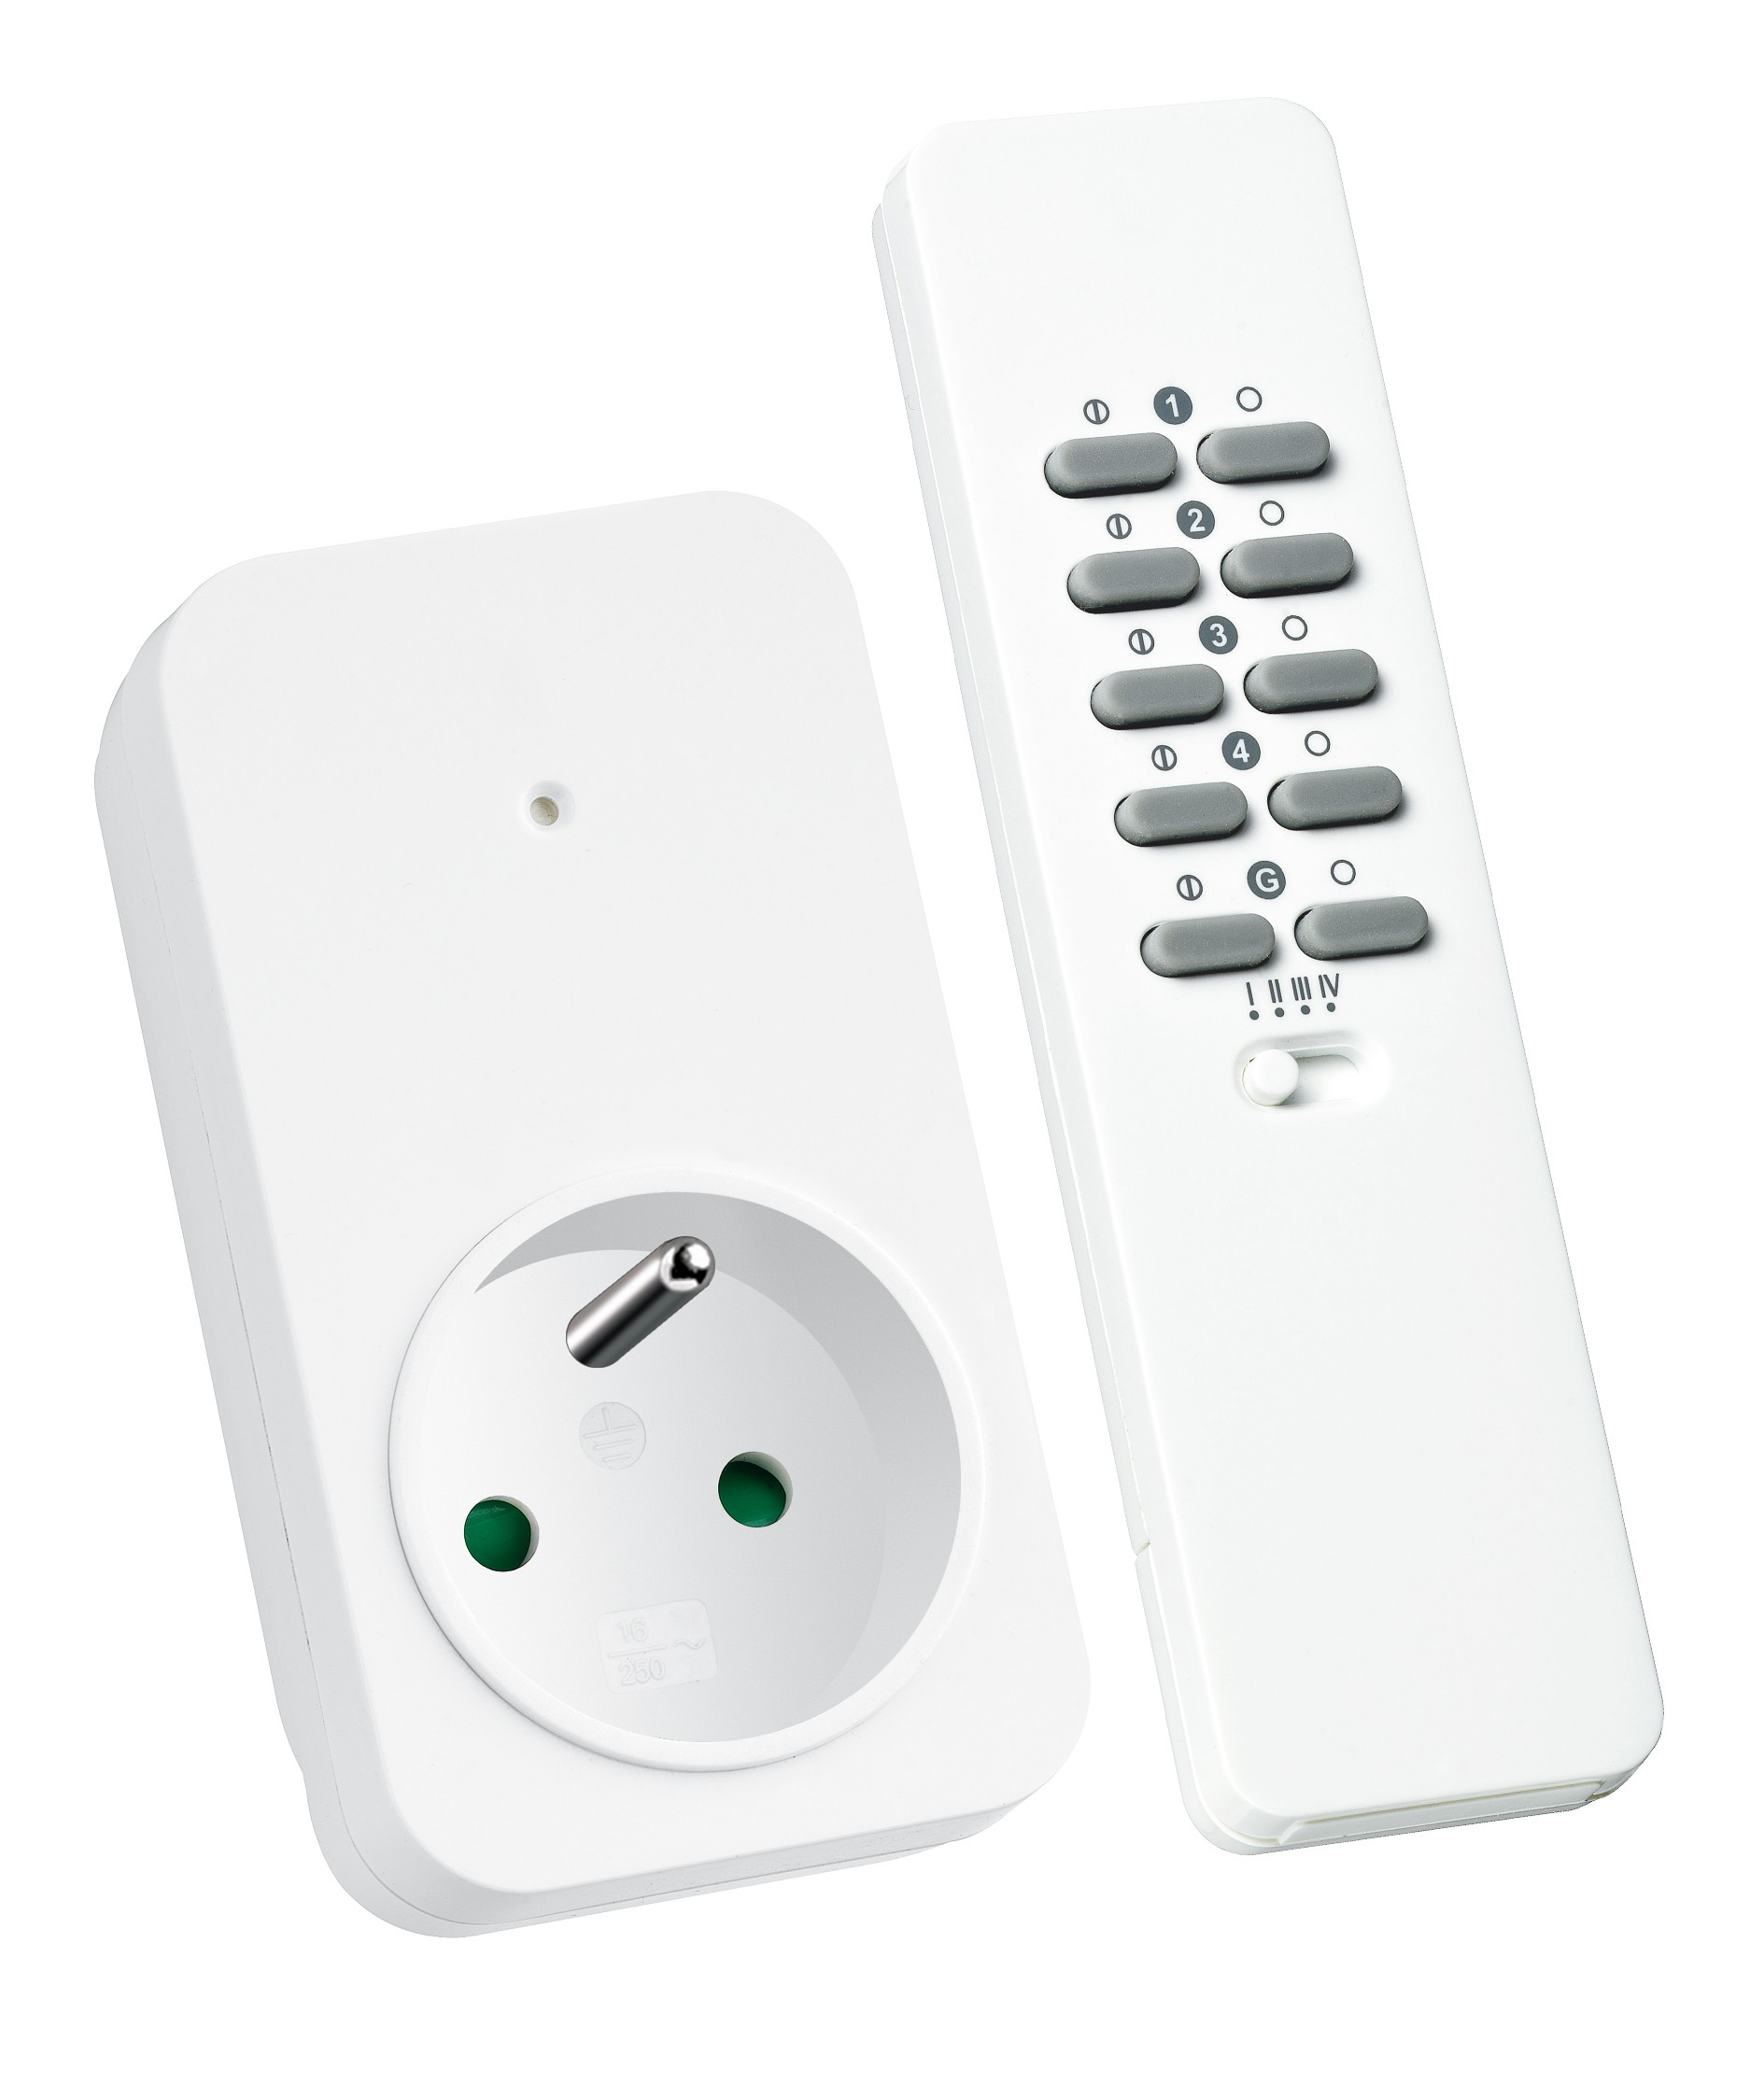 Klik-Aan-Klik-Uit Wallplug Smart Switch Set 1000w Be